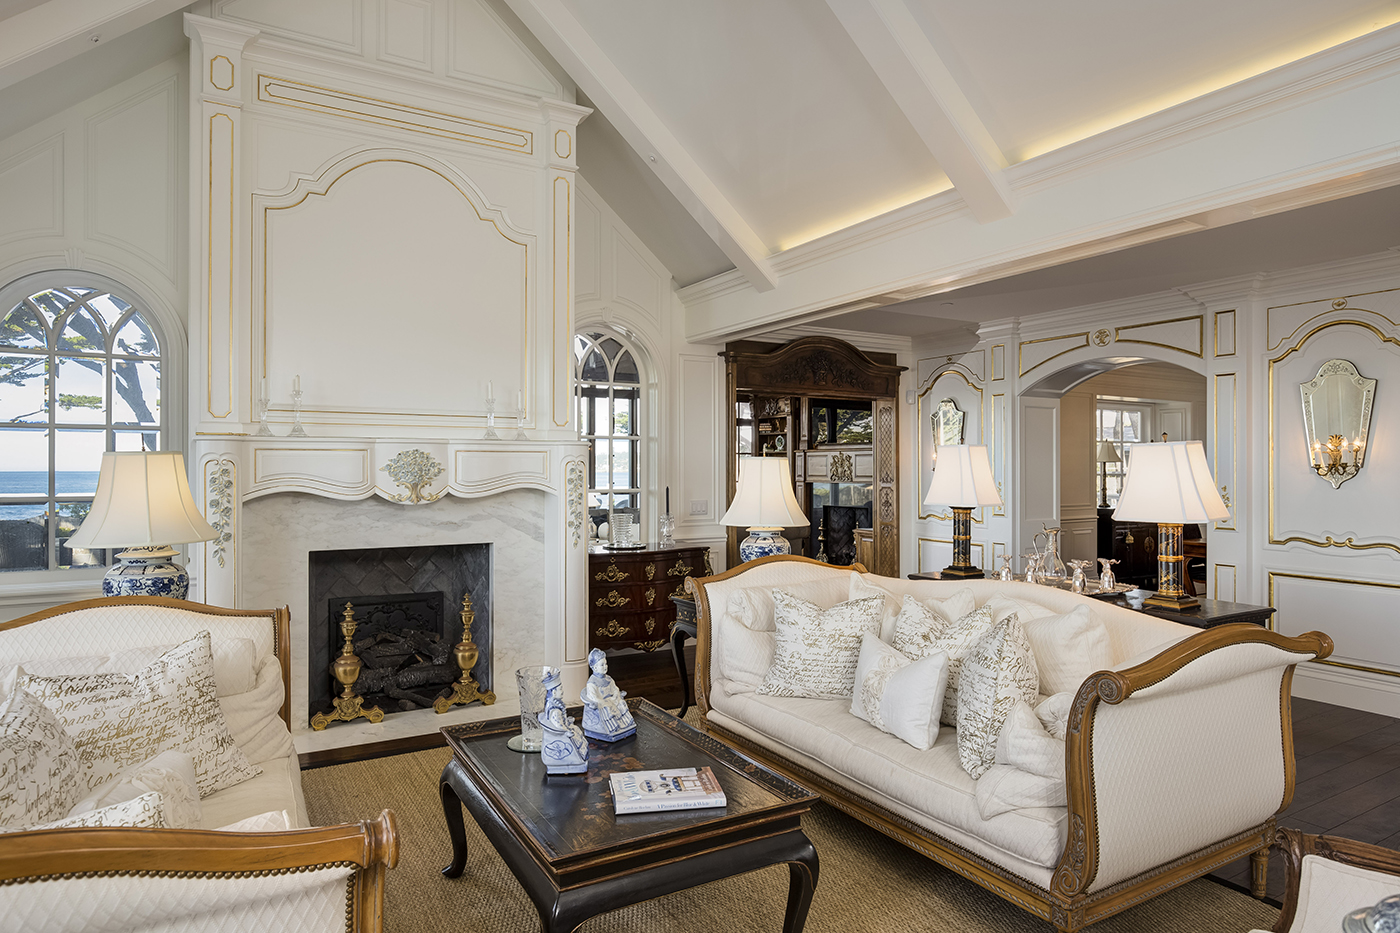 10 Ocean View - living room with french detailing and guilded trim.jpg